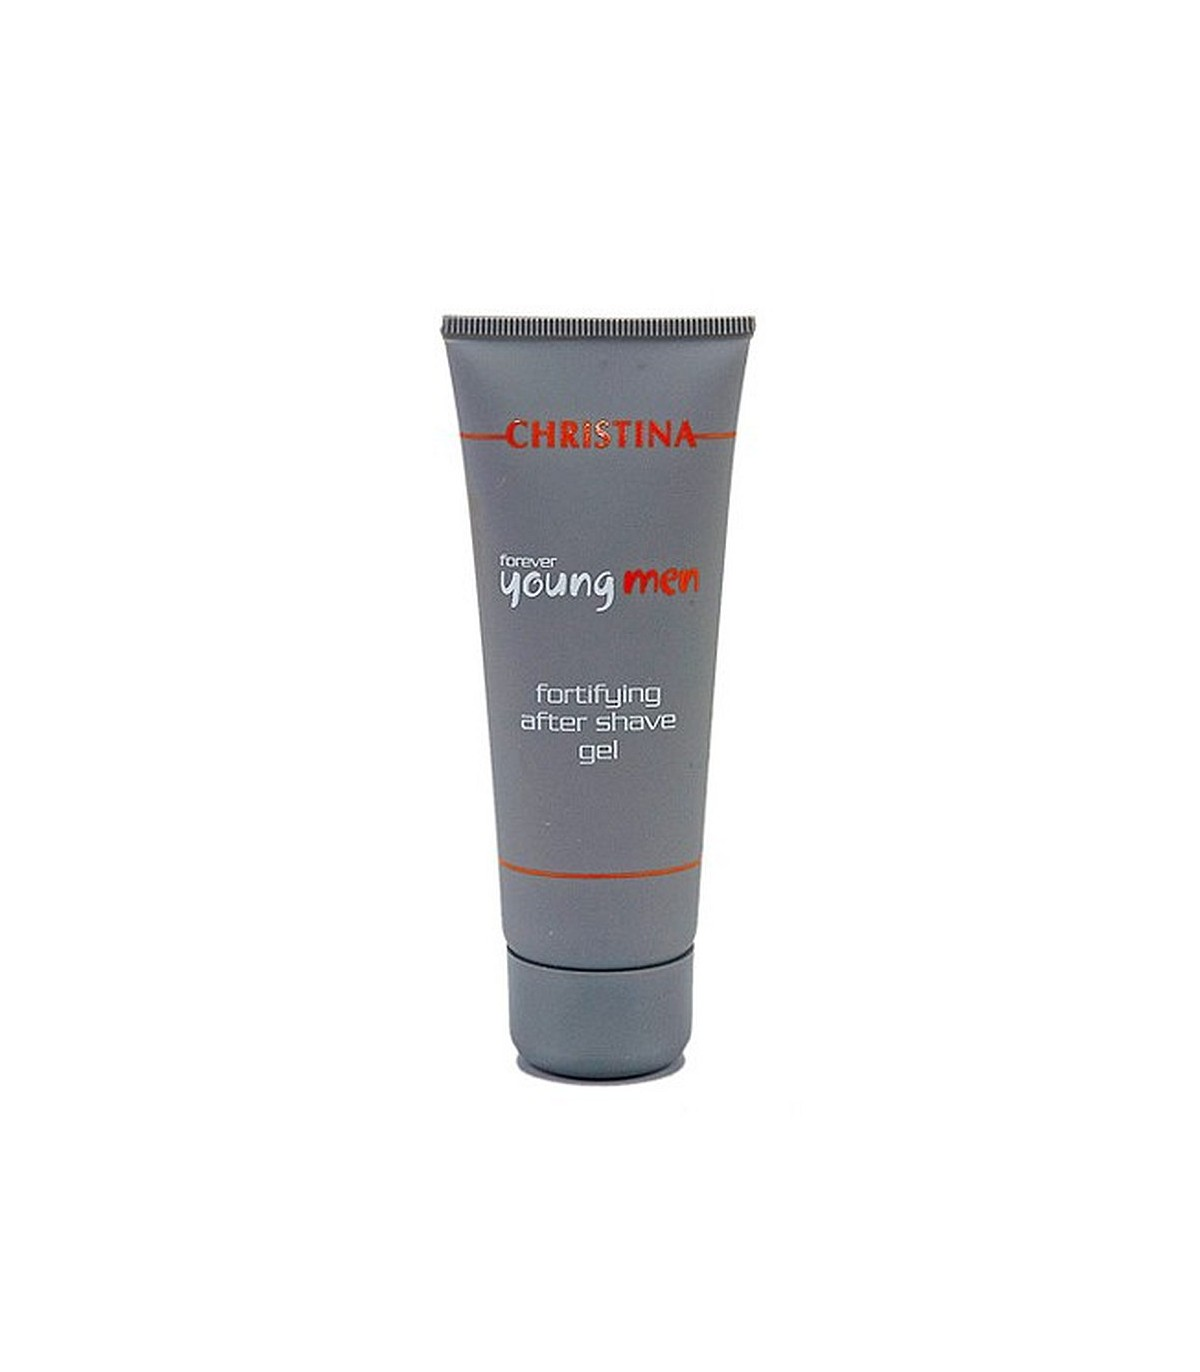 Fortifying Aftershave Gel - Forever Young Men - Christina - 75 ml